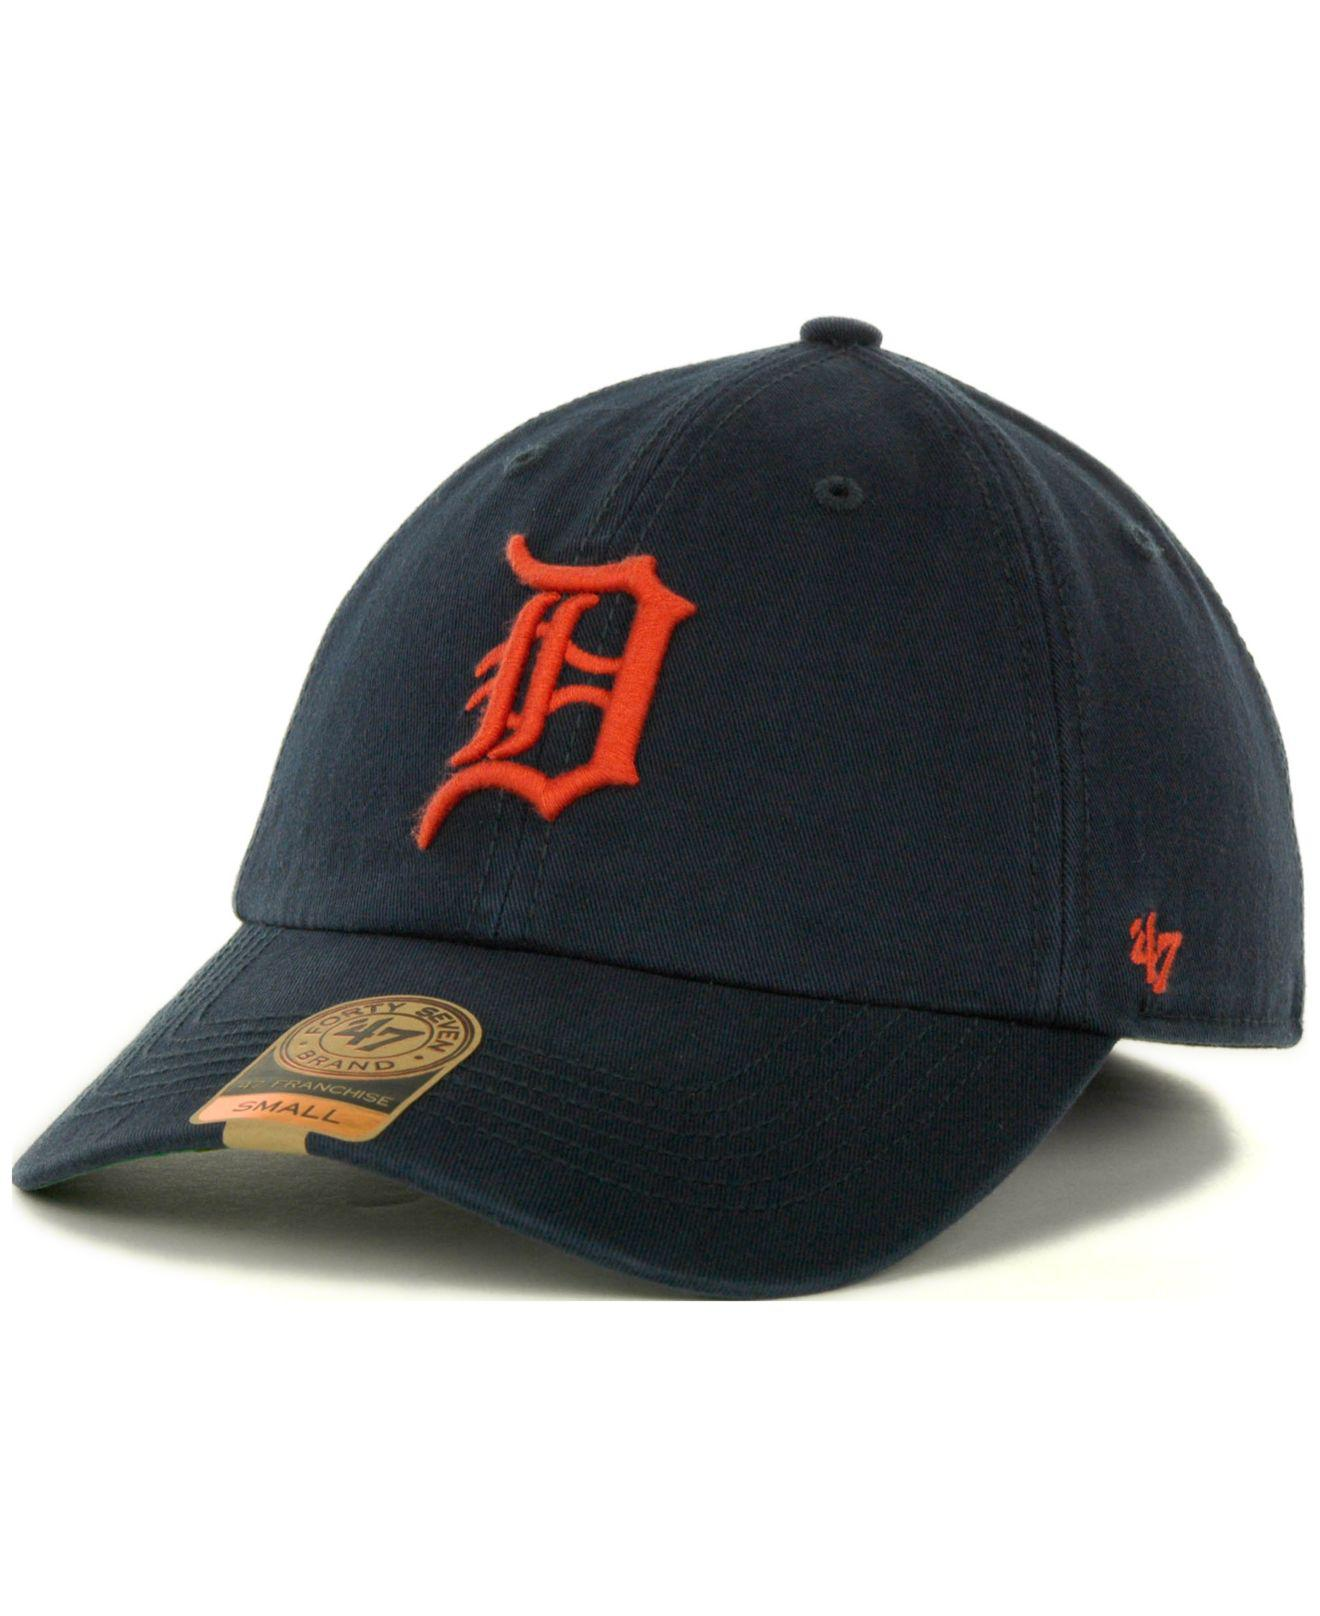 best authentic 064ad 8fdc7 ... new era mlb clubhouse jersey pop 9fifty snapback cap 278b493yhgh 35cb1  68f19  low cost 47 brand. mens blue detroit tigers franchise cap 338d0 4aa9b